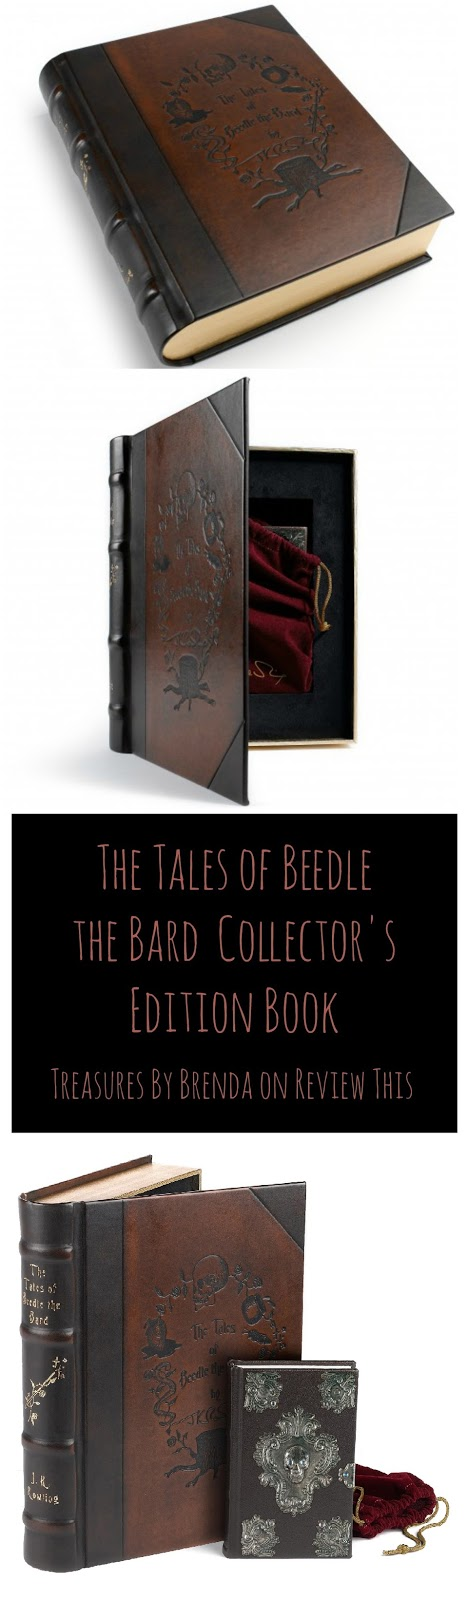 The Tales of Beedle the Bard Collector's Edition Book Review